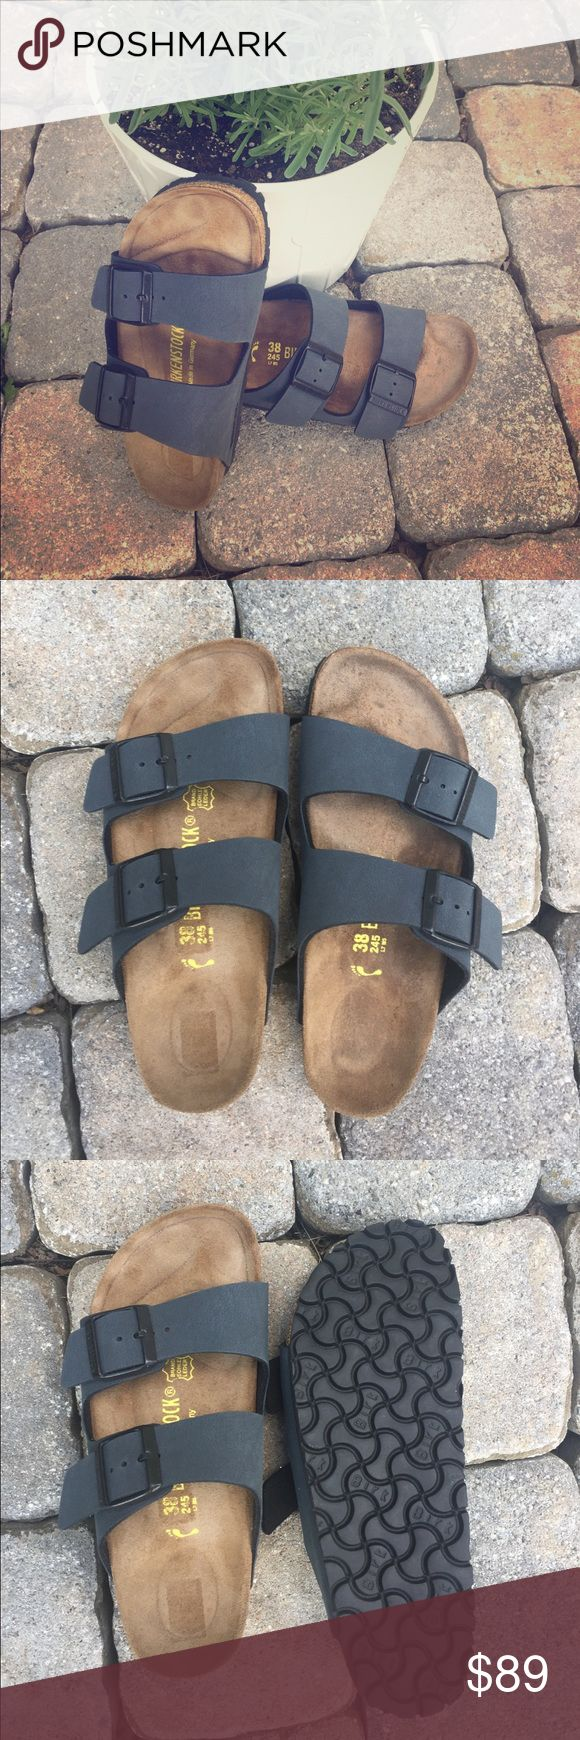 Arizona Birkenstock slippers Made in  Germany barely used Birkenstock slippers. With Birko Sole and classic footbed. Navy leather upper and leather insole, rubber sole. Barely worn, Sole does not show any wear, inside a little bit, see photos. Perfect for summer make me an offer!!!✅✅✅ Birkenstock Shoes Slippers